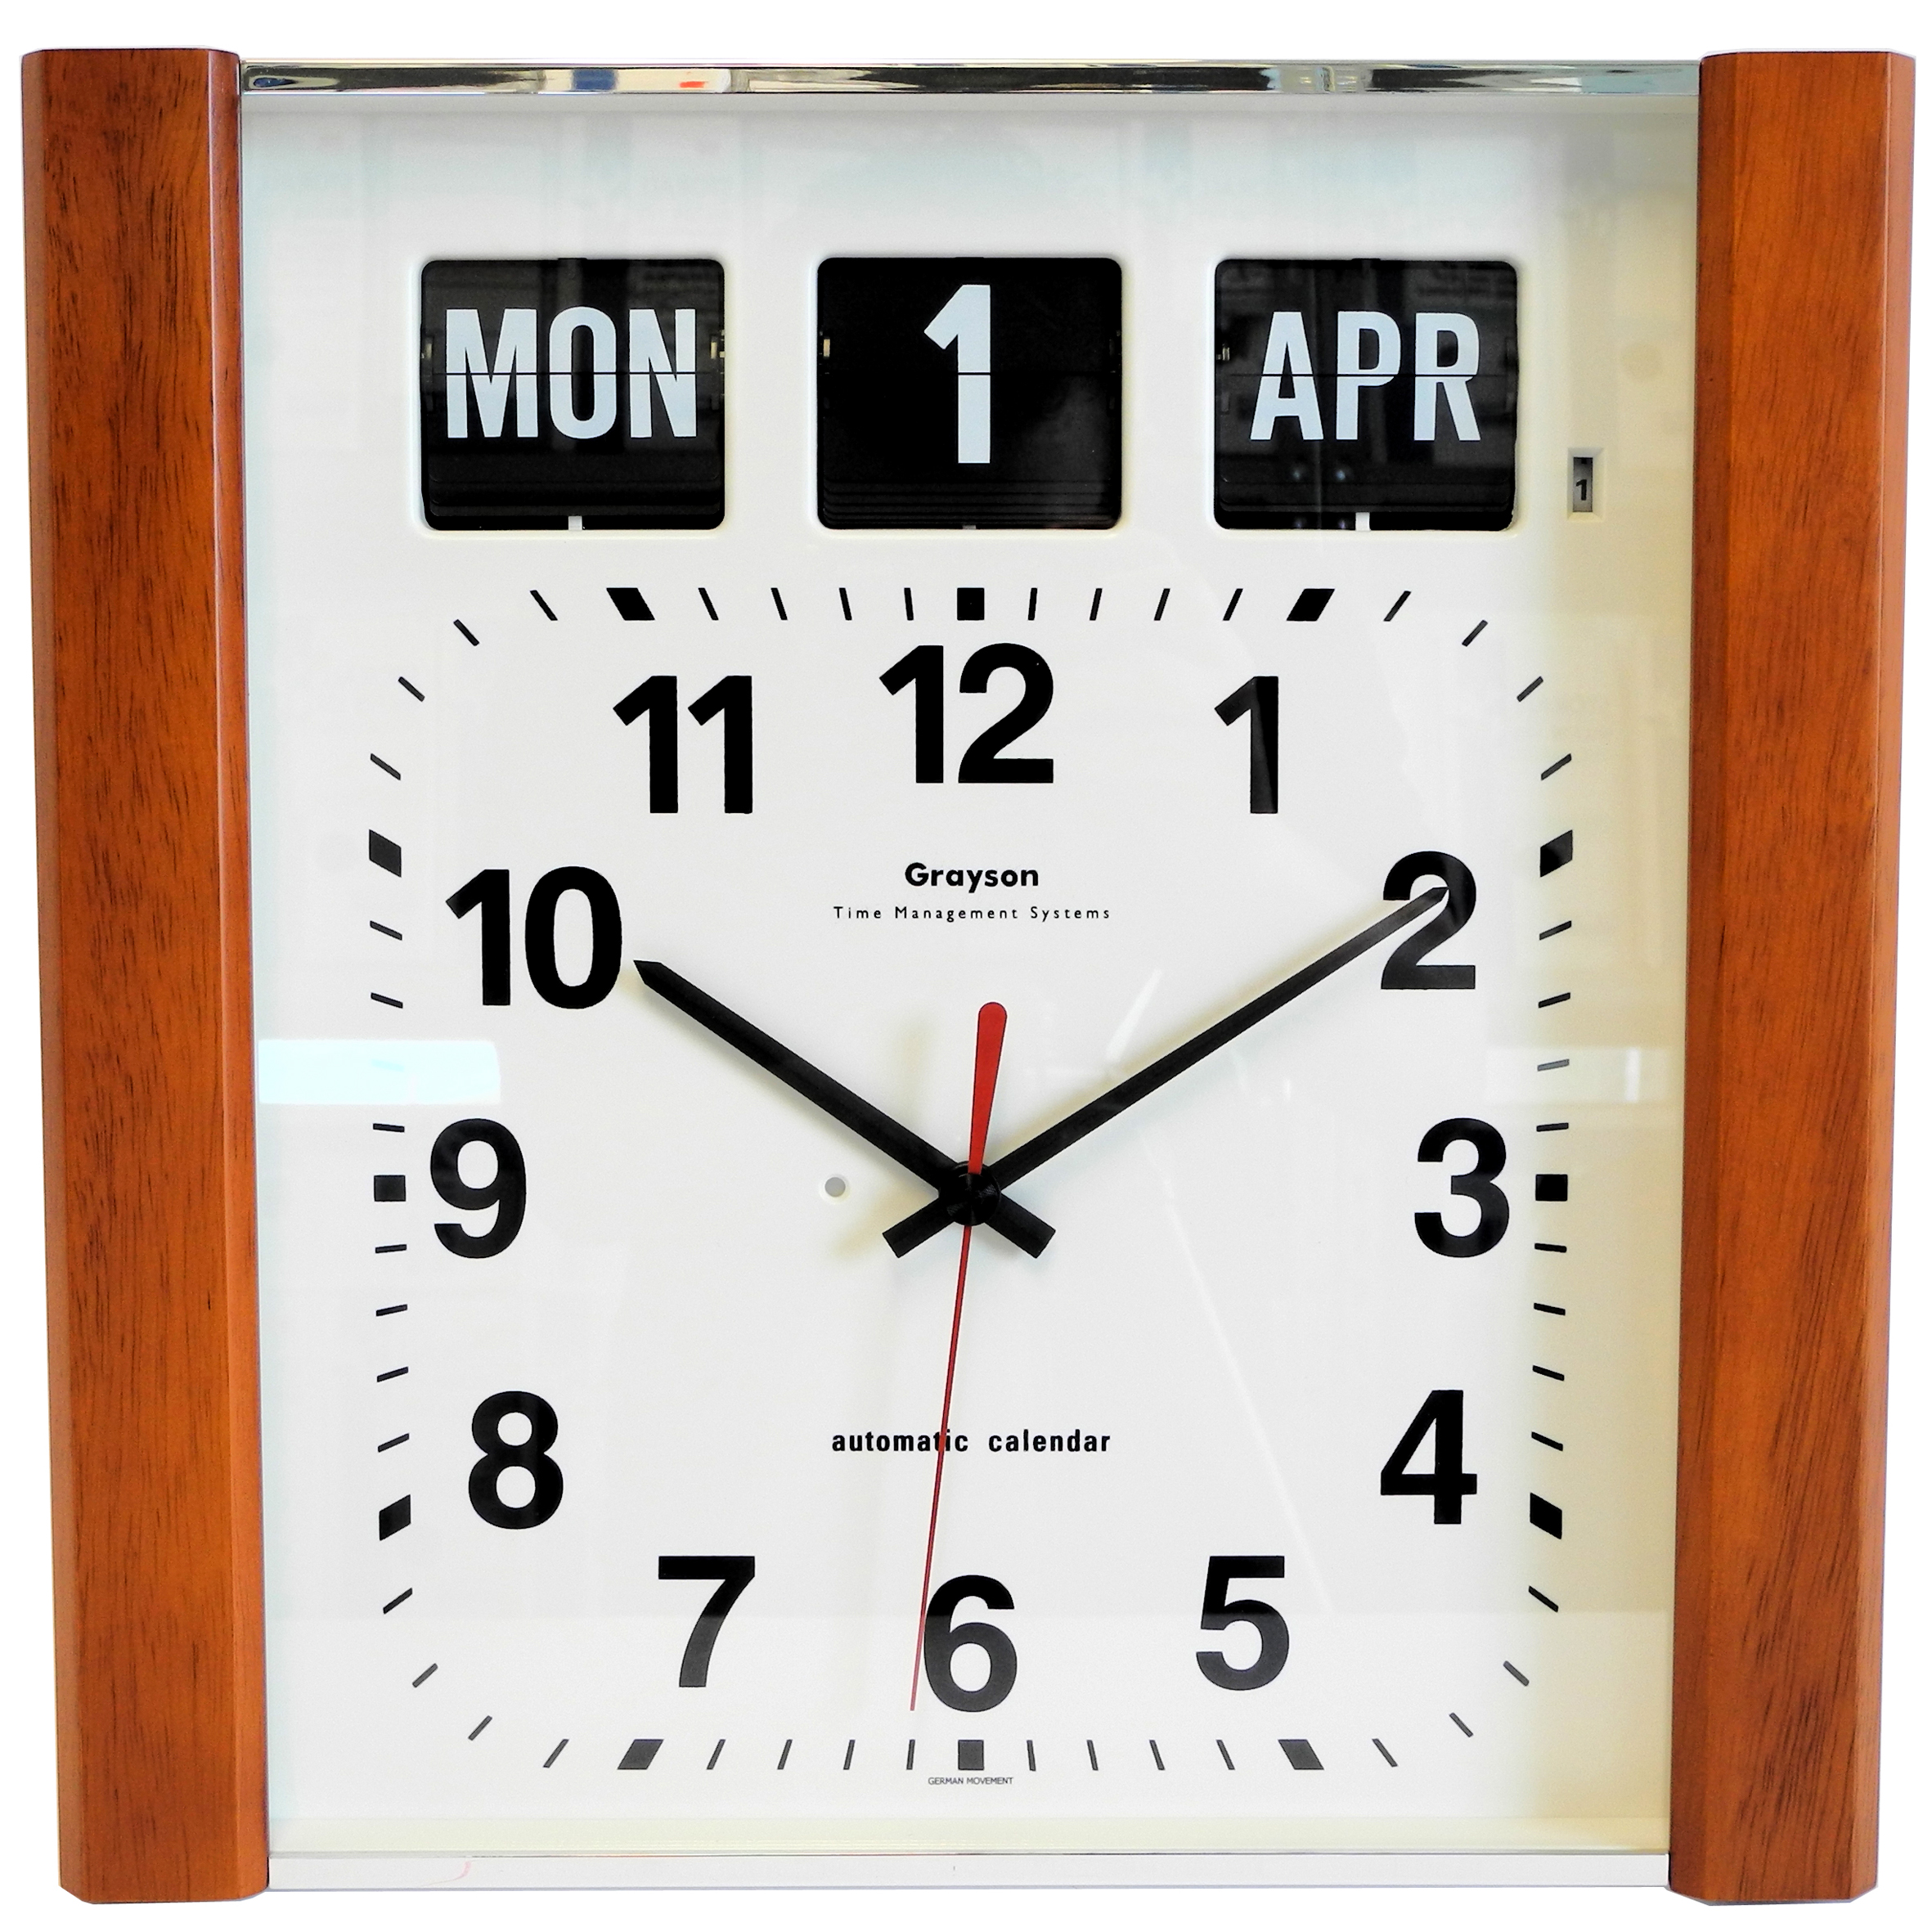 Grayson wall flip clock time day date 12000 wall clocks wooden panelled perpetual calendar clock g239wd amipublicfo Choice Image